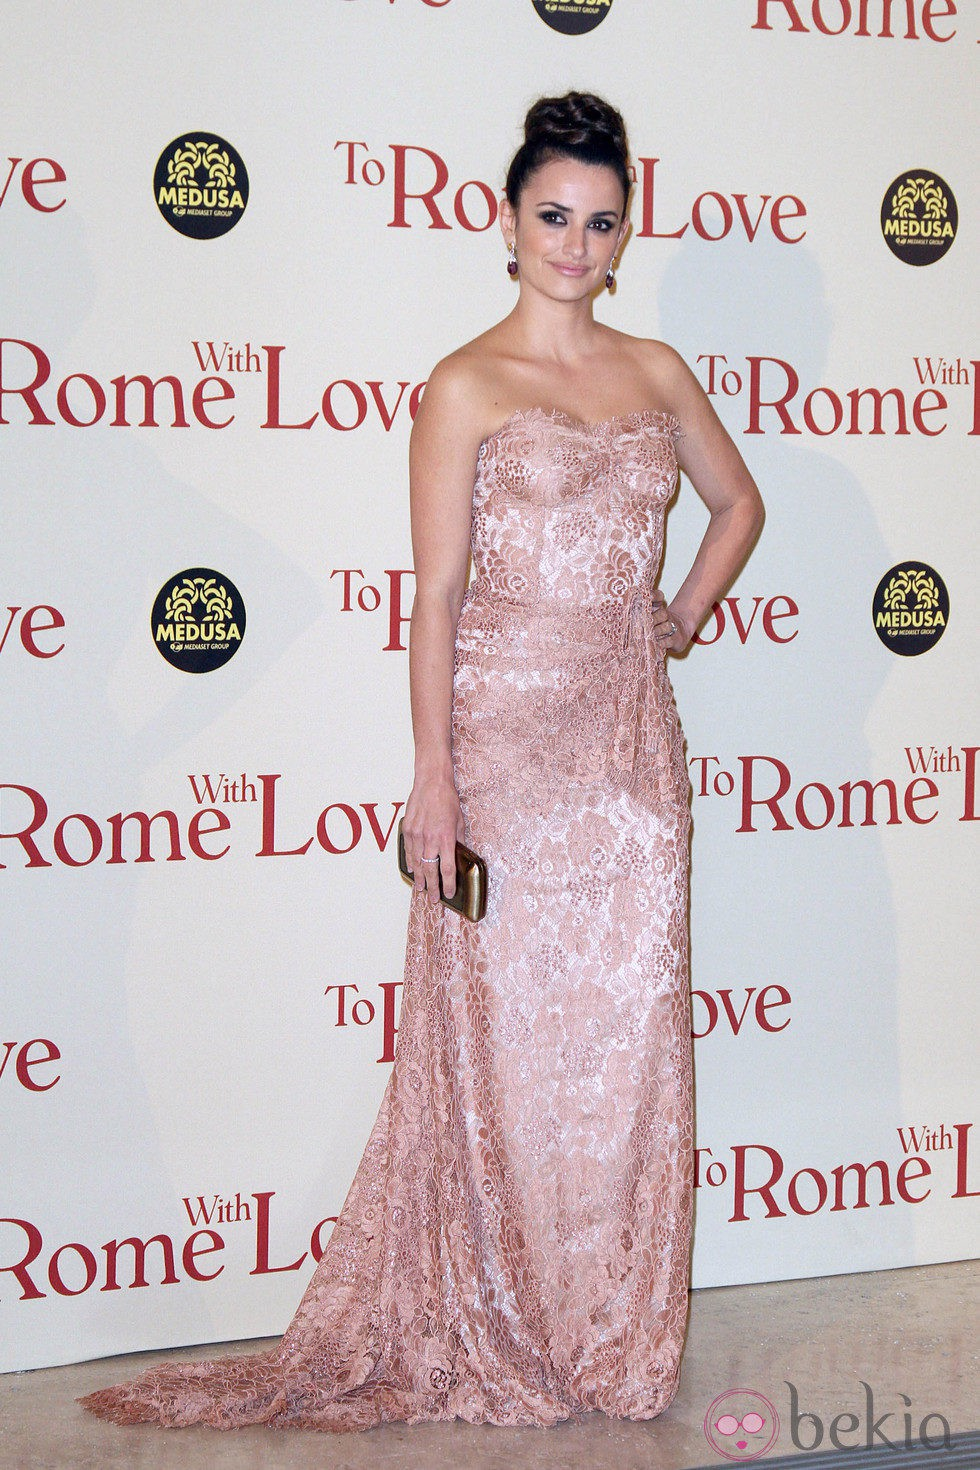 Penélope Cruz en el estreno de 'To Rome With Love' en Roma